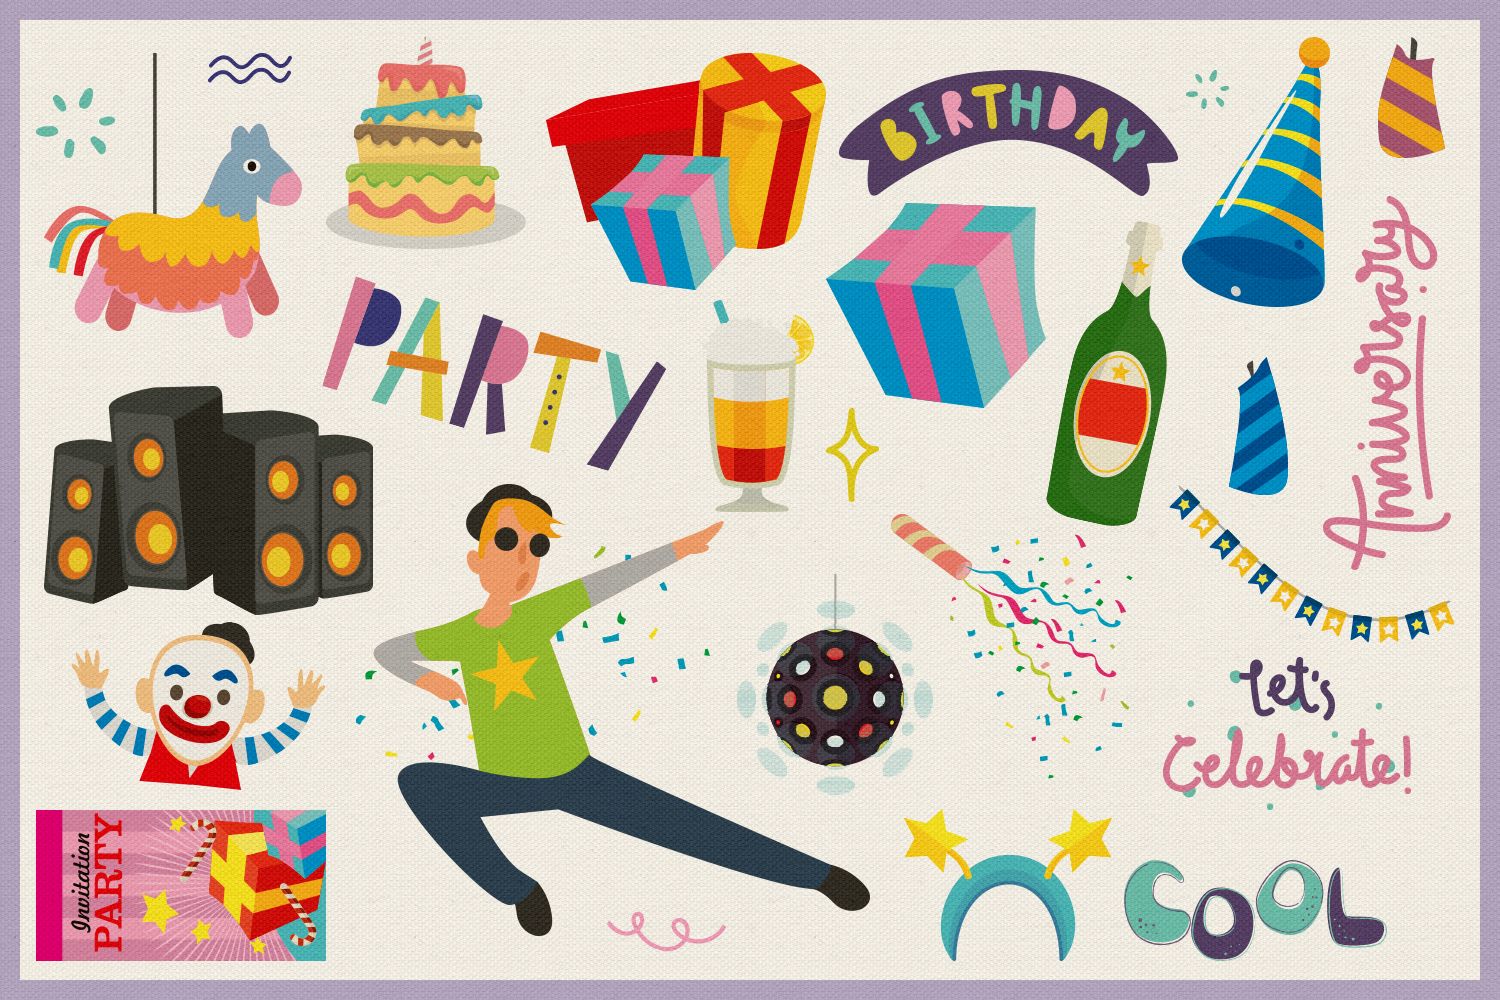 80 All About Party Vector Clipart & Seamless Patterns example image 4